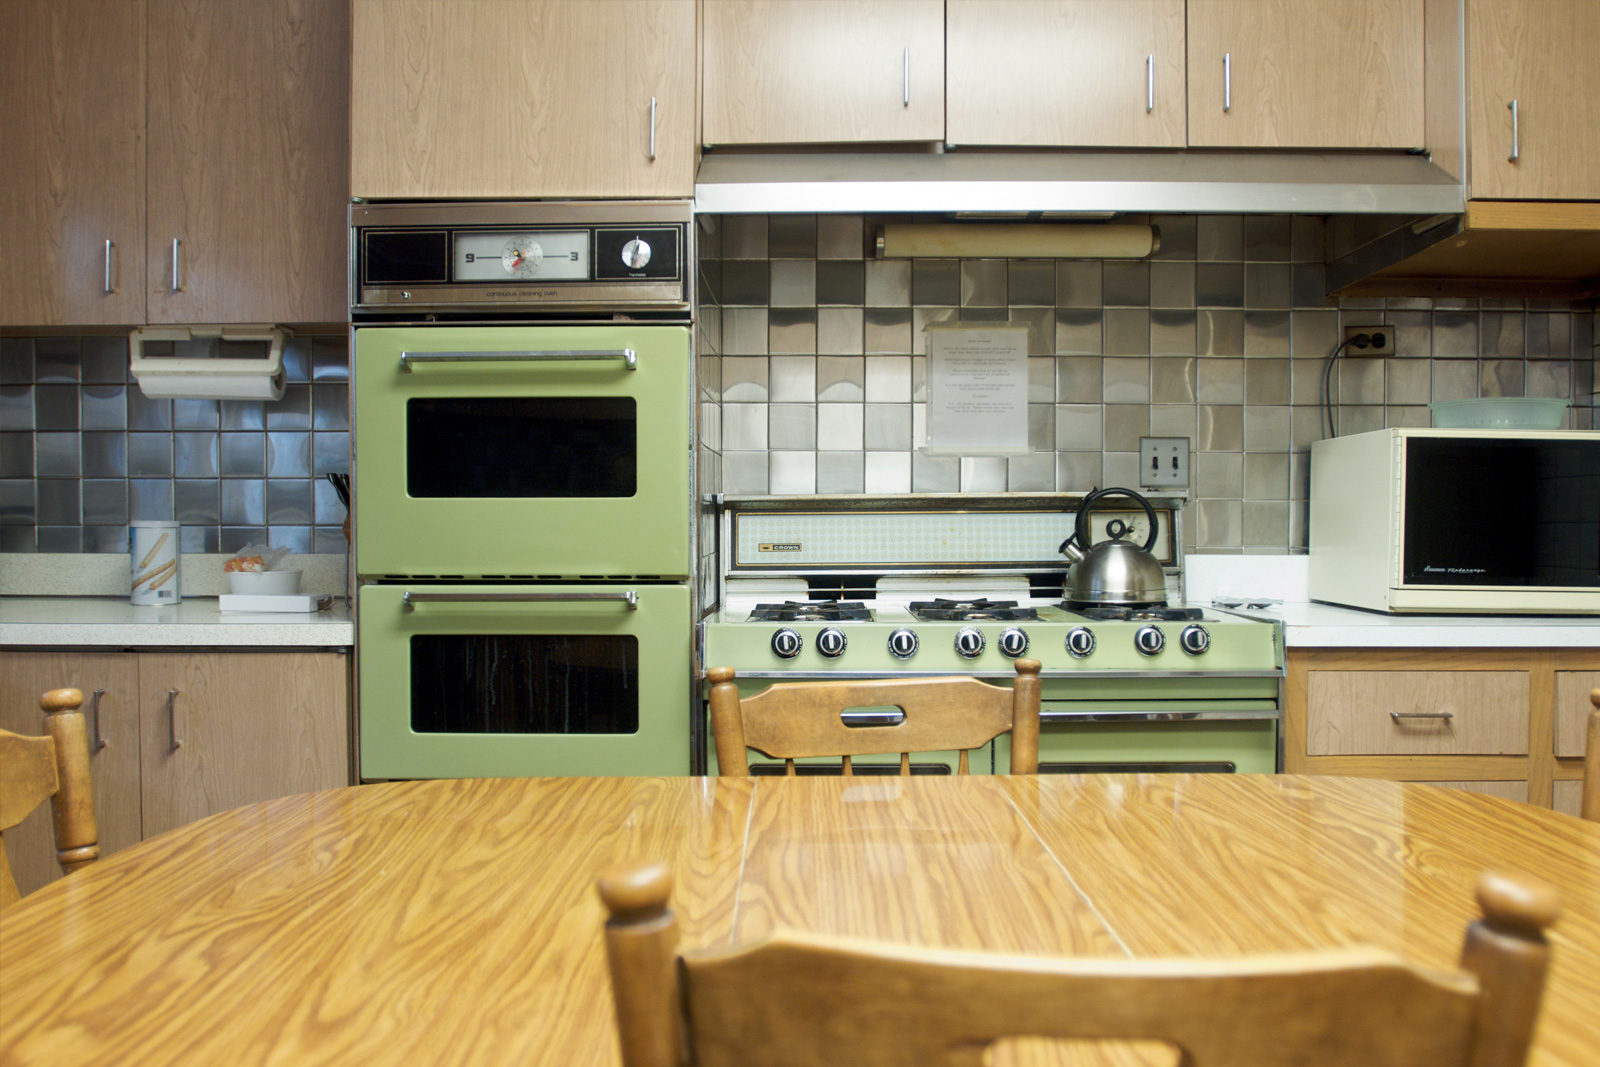 kitchen countertops kitchen countertop material 6 Materials to Never Use in Your Kitchen